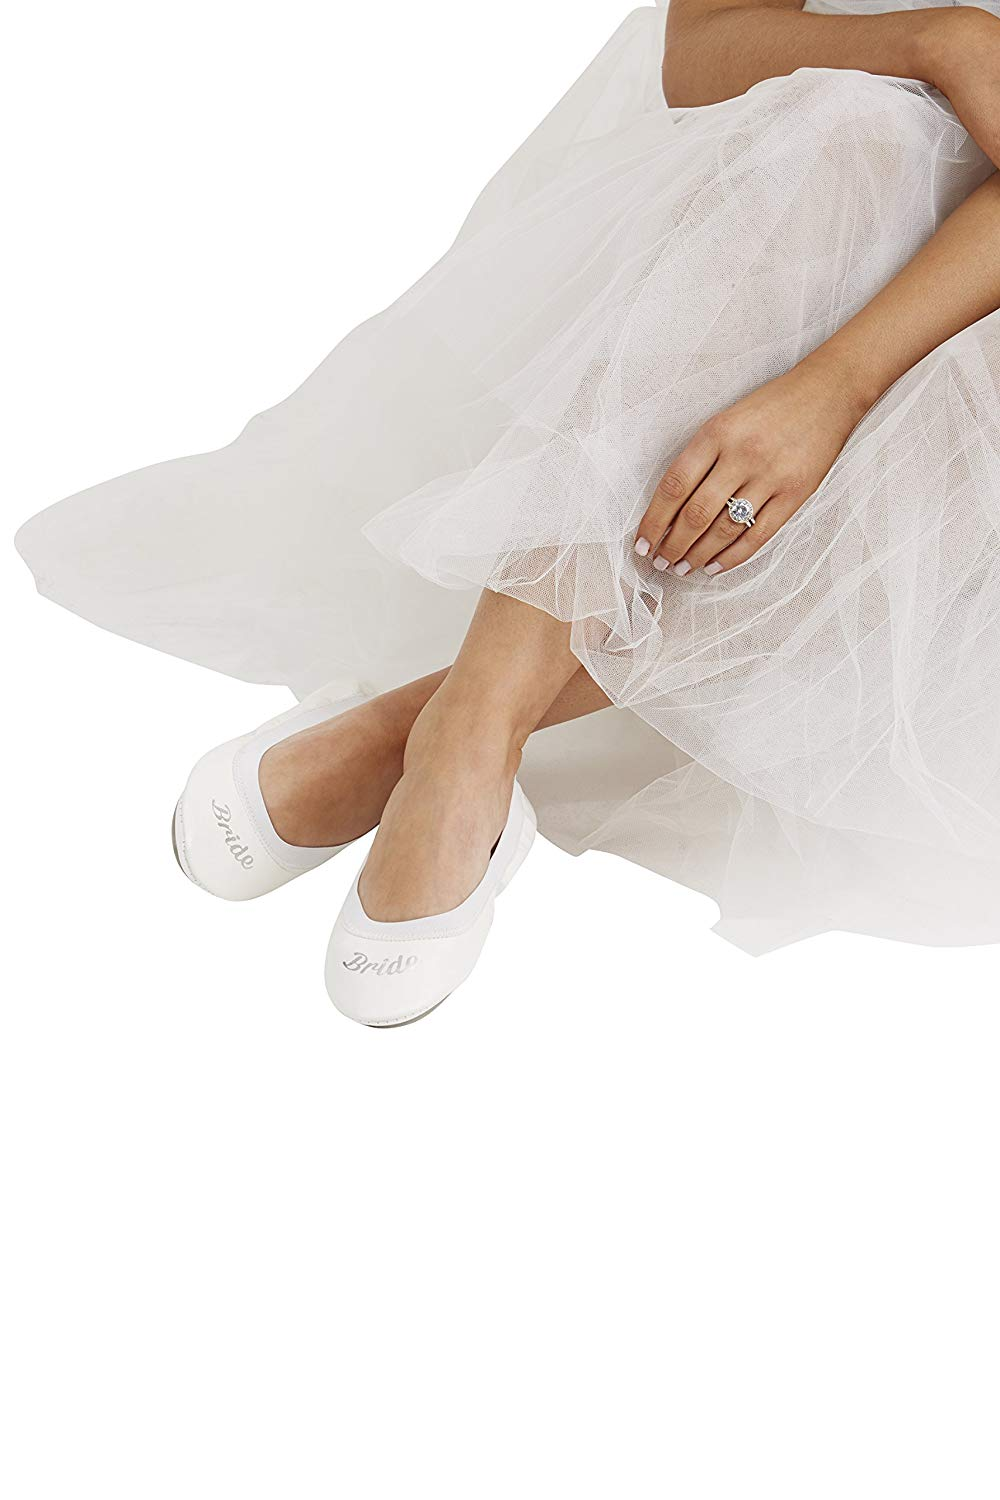 5a3246dc2 Get Quotations · White Bride Fold up Ballet Flats-White Foldable Shoes with  Bride Print-Cute Purse